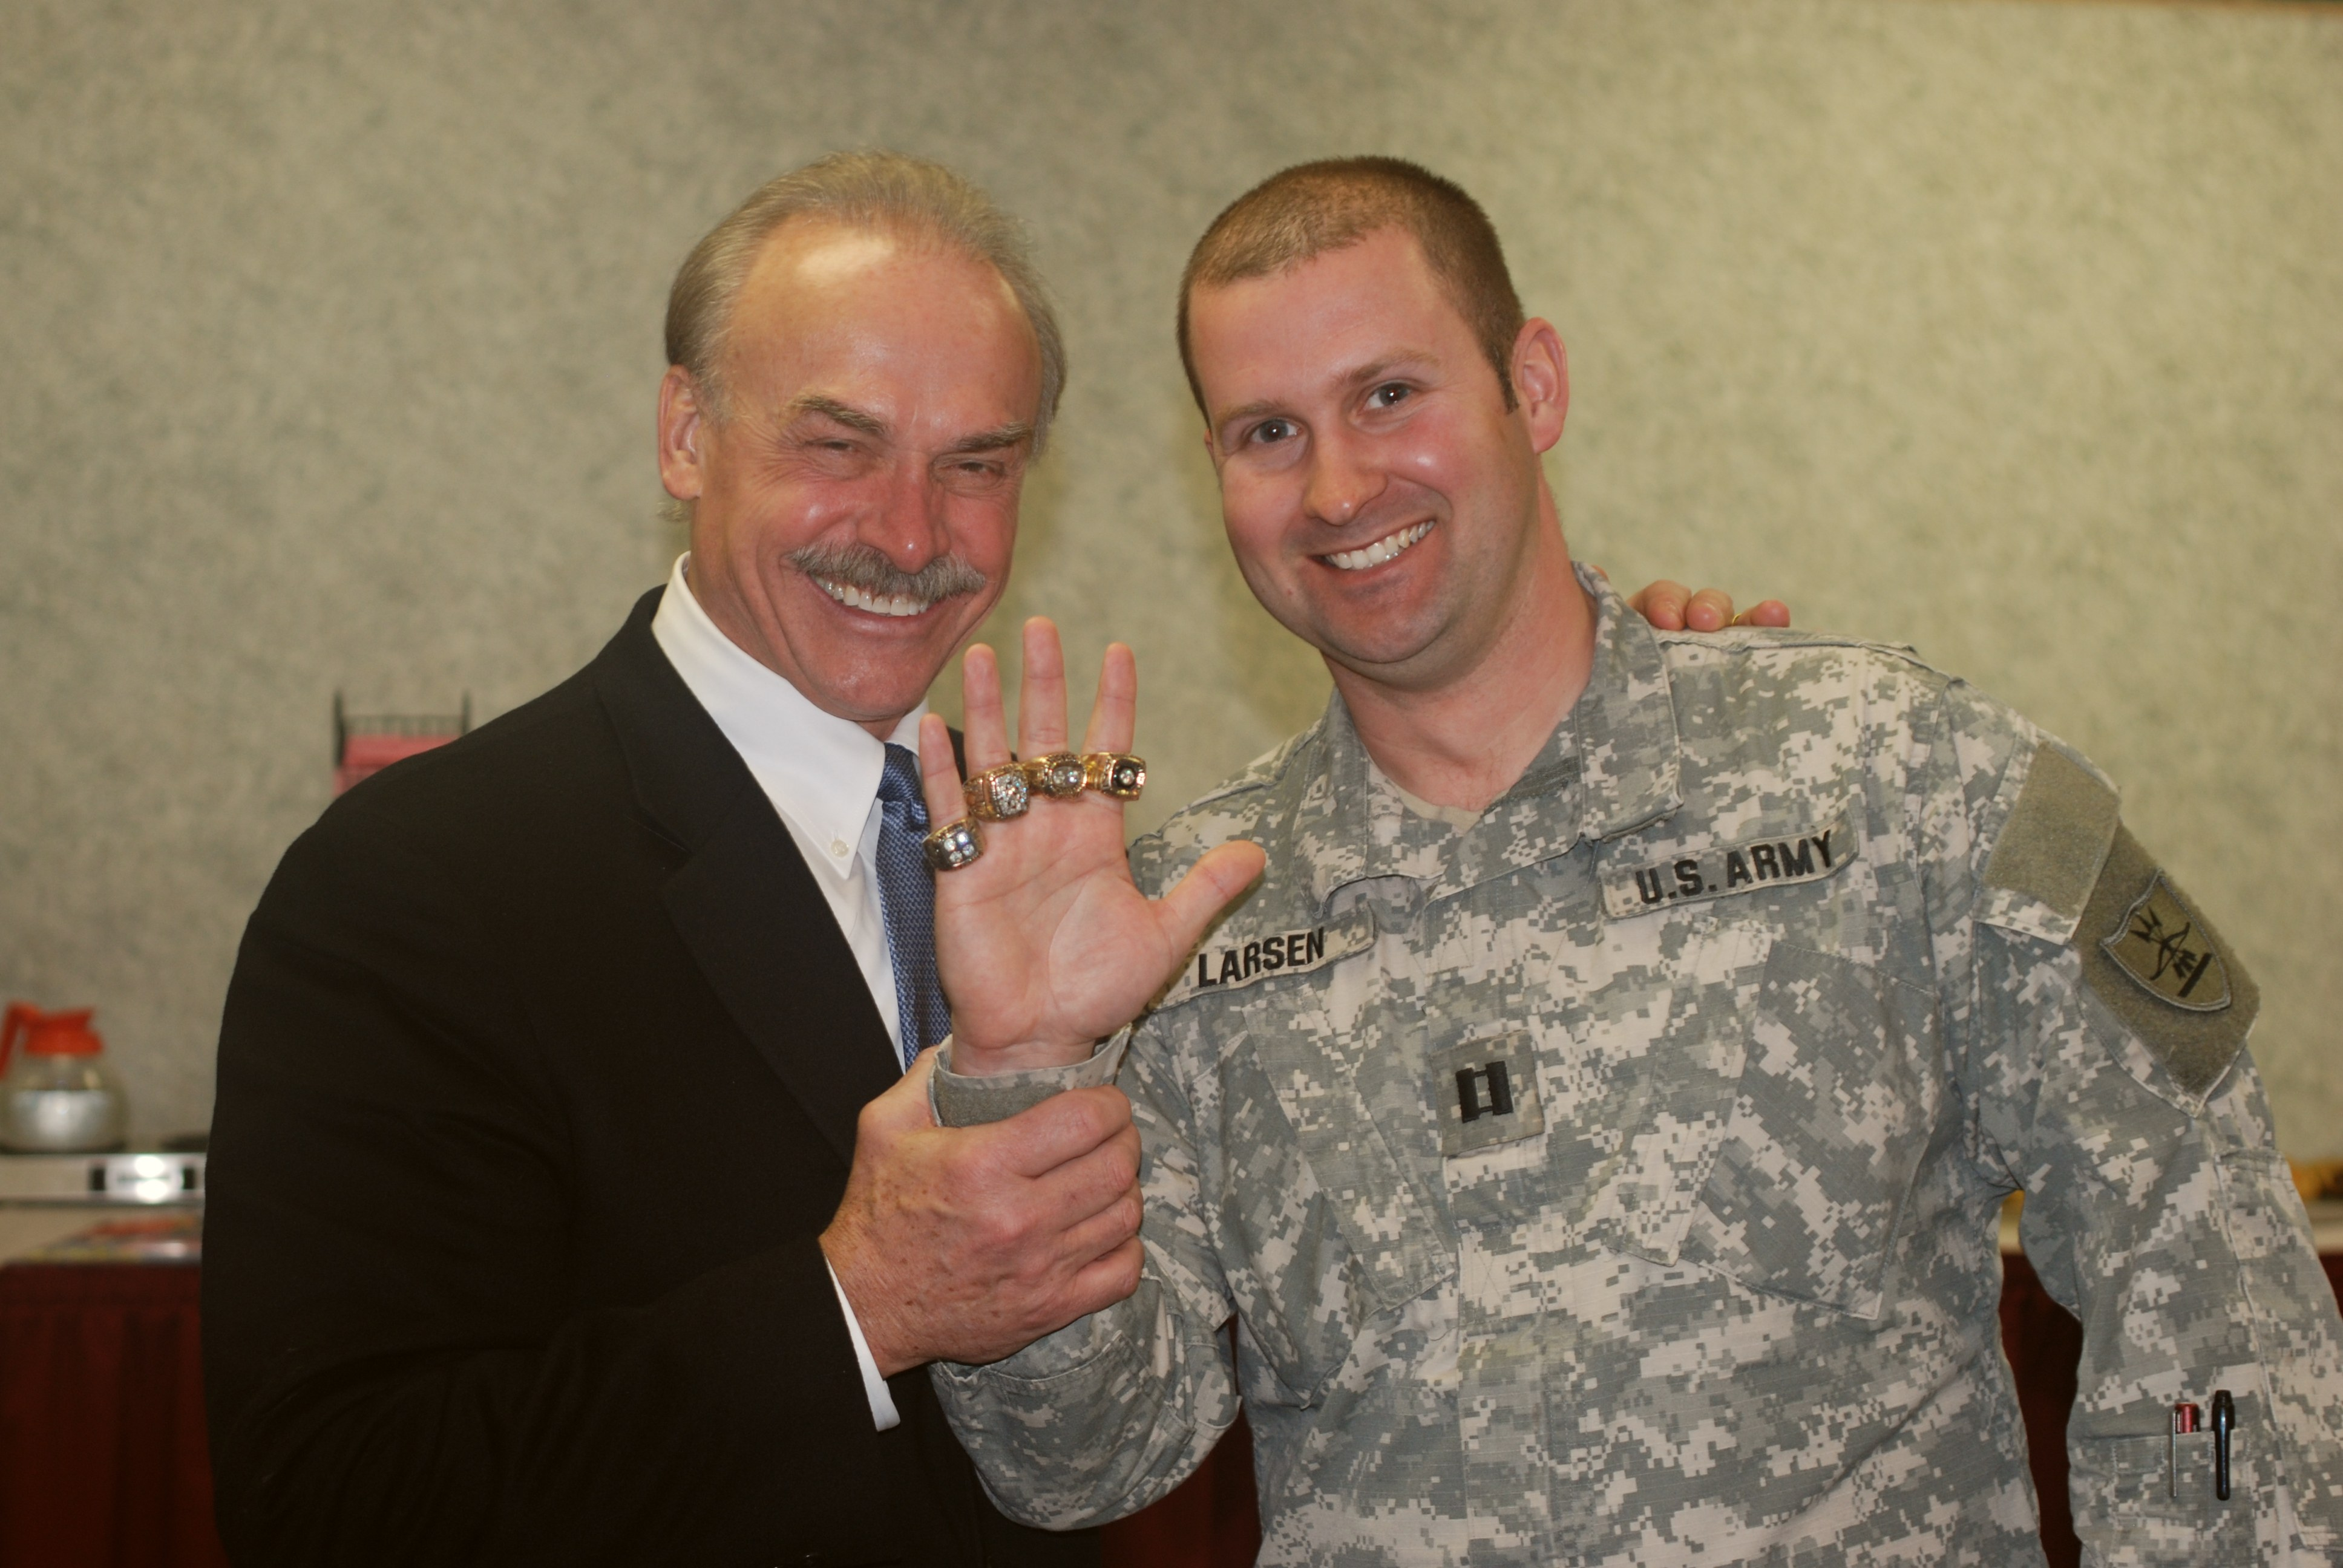 Description Rocky Bleier - Super Bowl Rings - Jan 24 2009.jpg